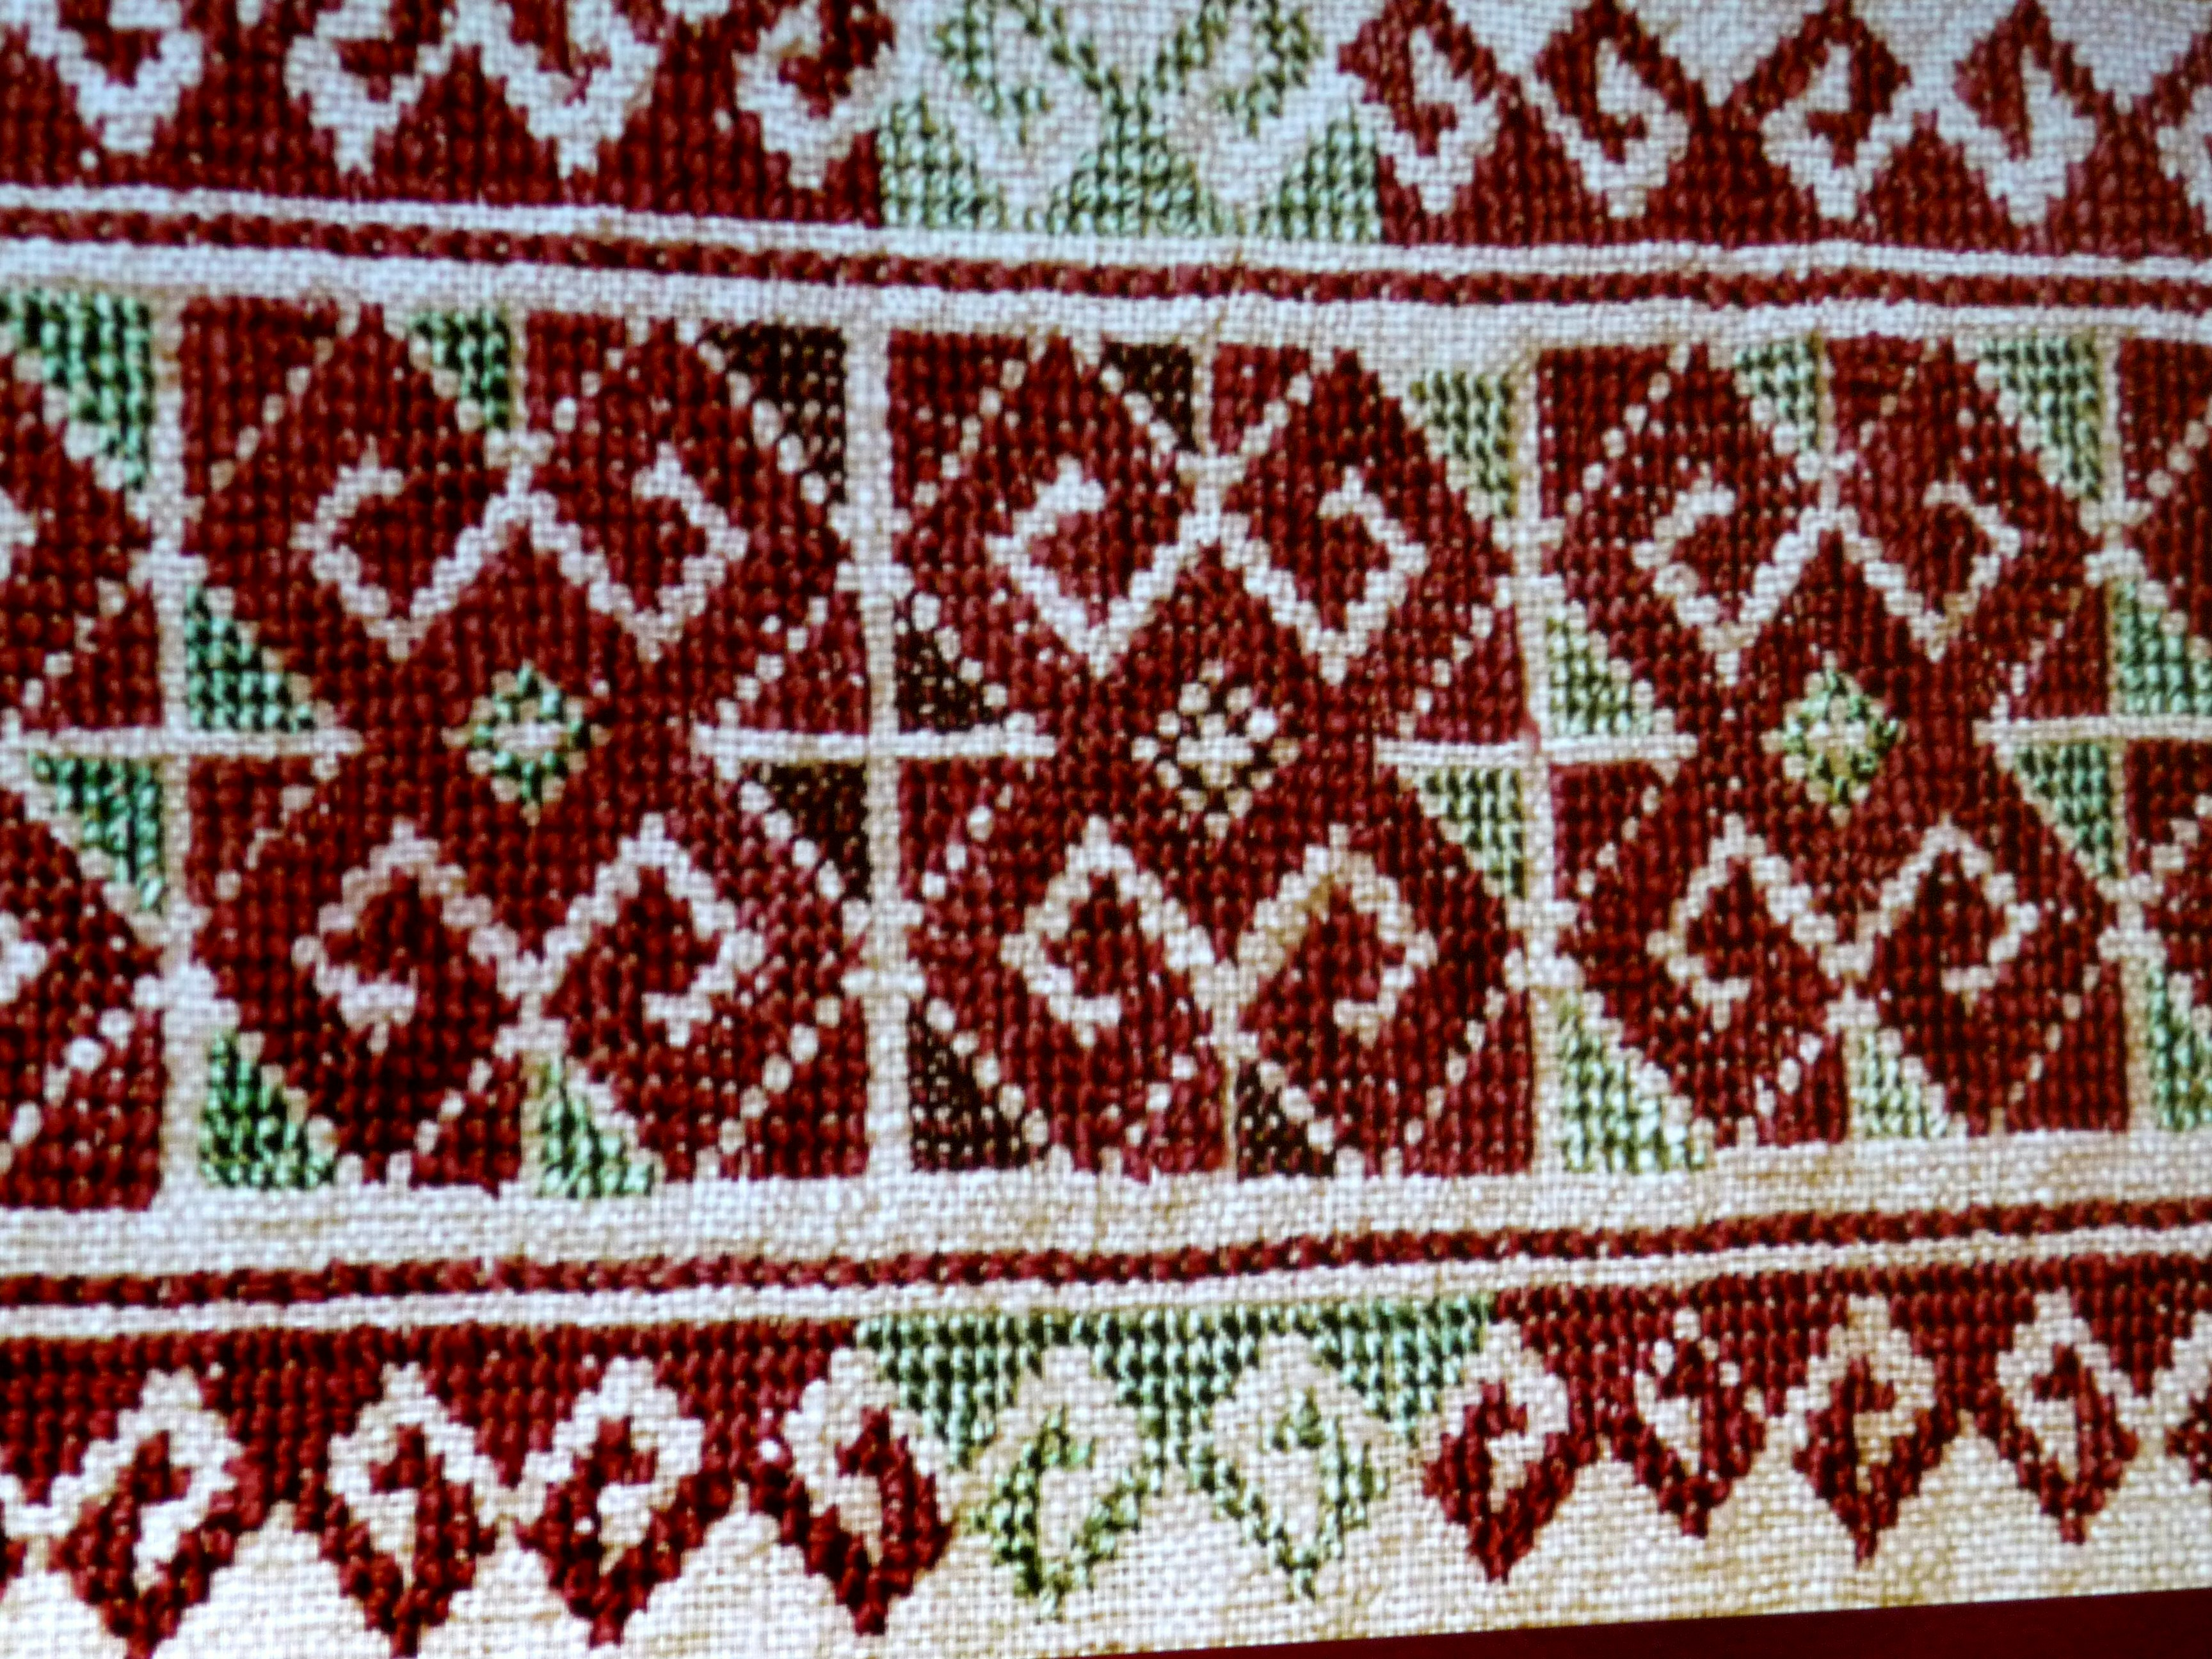 slide showing detail of embroidered clothing by  Qaraqalpaq people